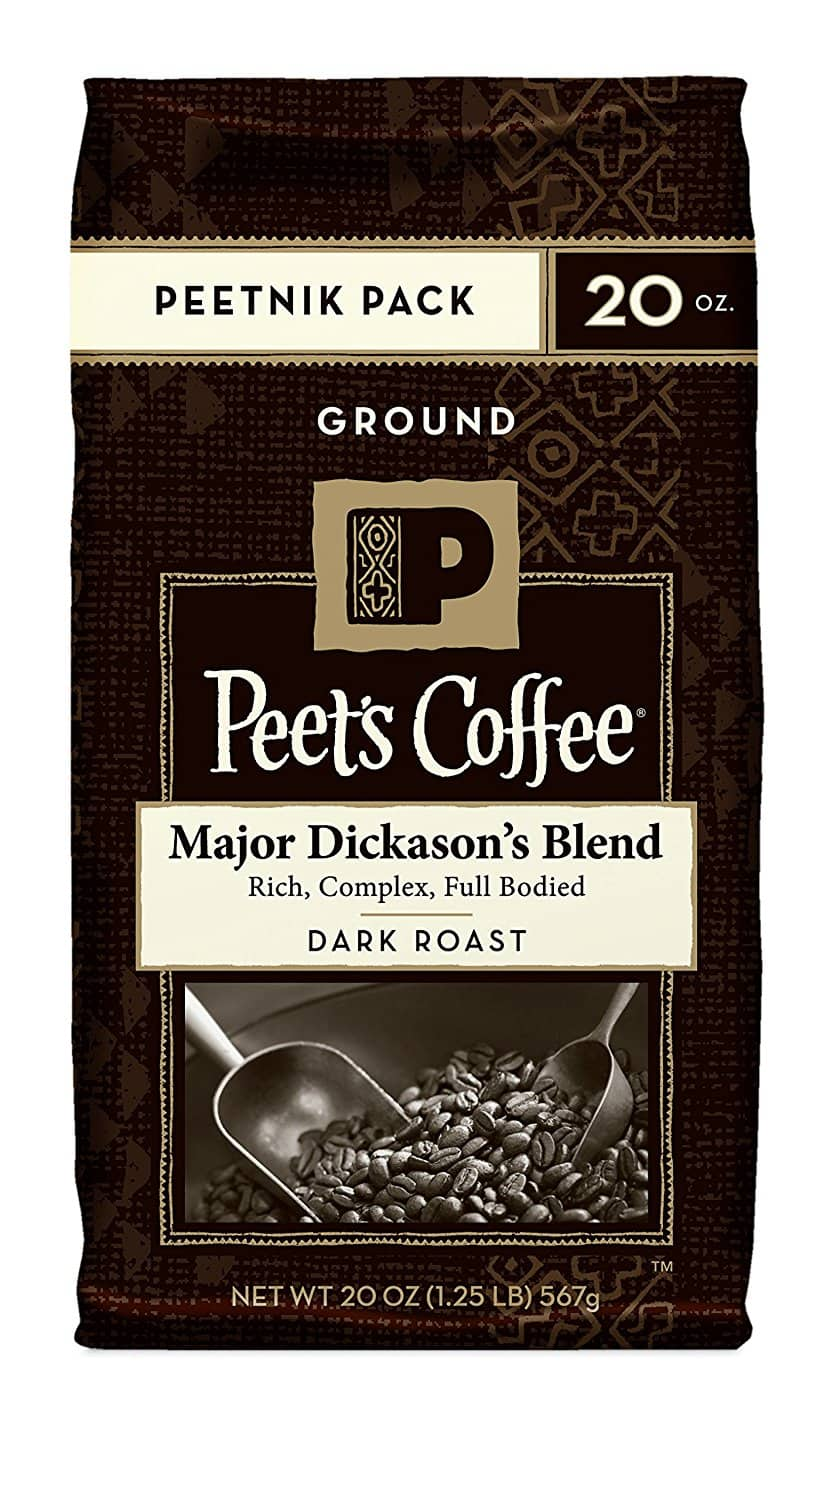 Peet's Coffee - Major Dickason's or French Roast - 20 Ounce 'Peetnik Pack' (Ground) - $7.87 AC & S&S ($6.56 AC & 5 S&S Orders) - Amazon